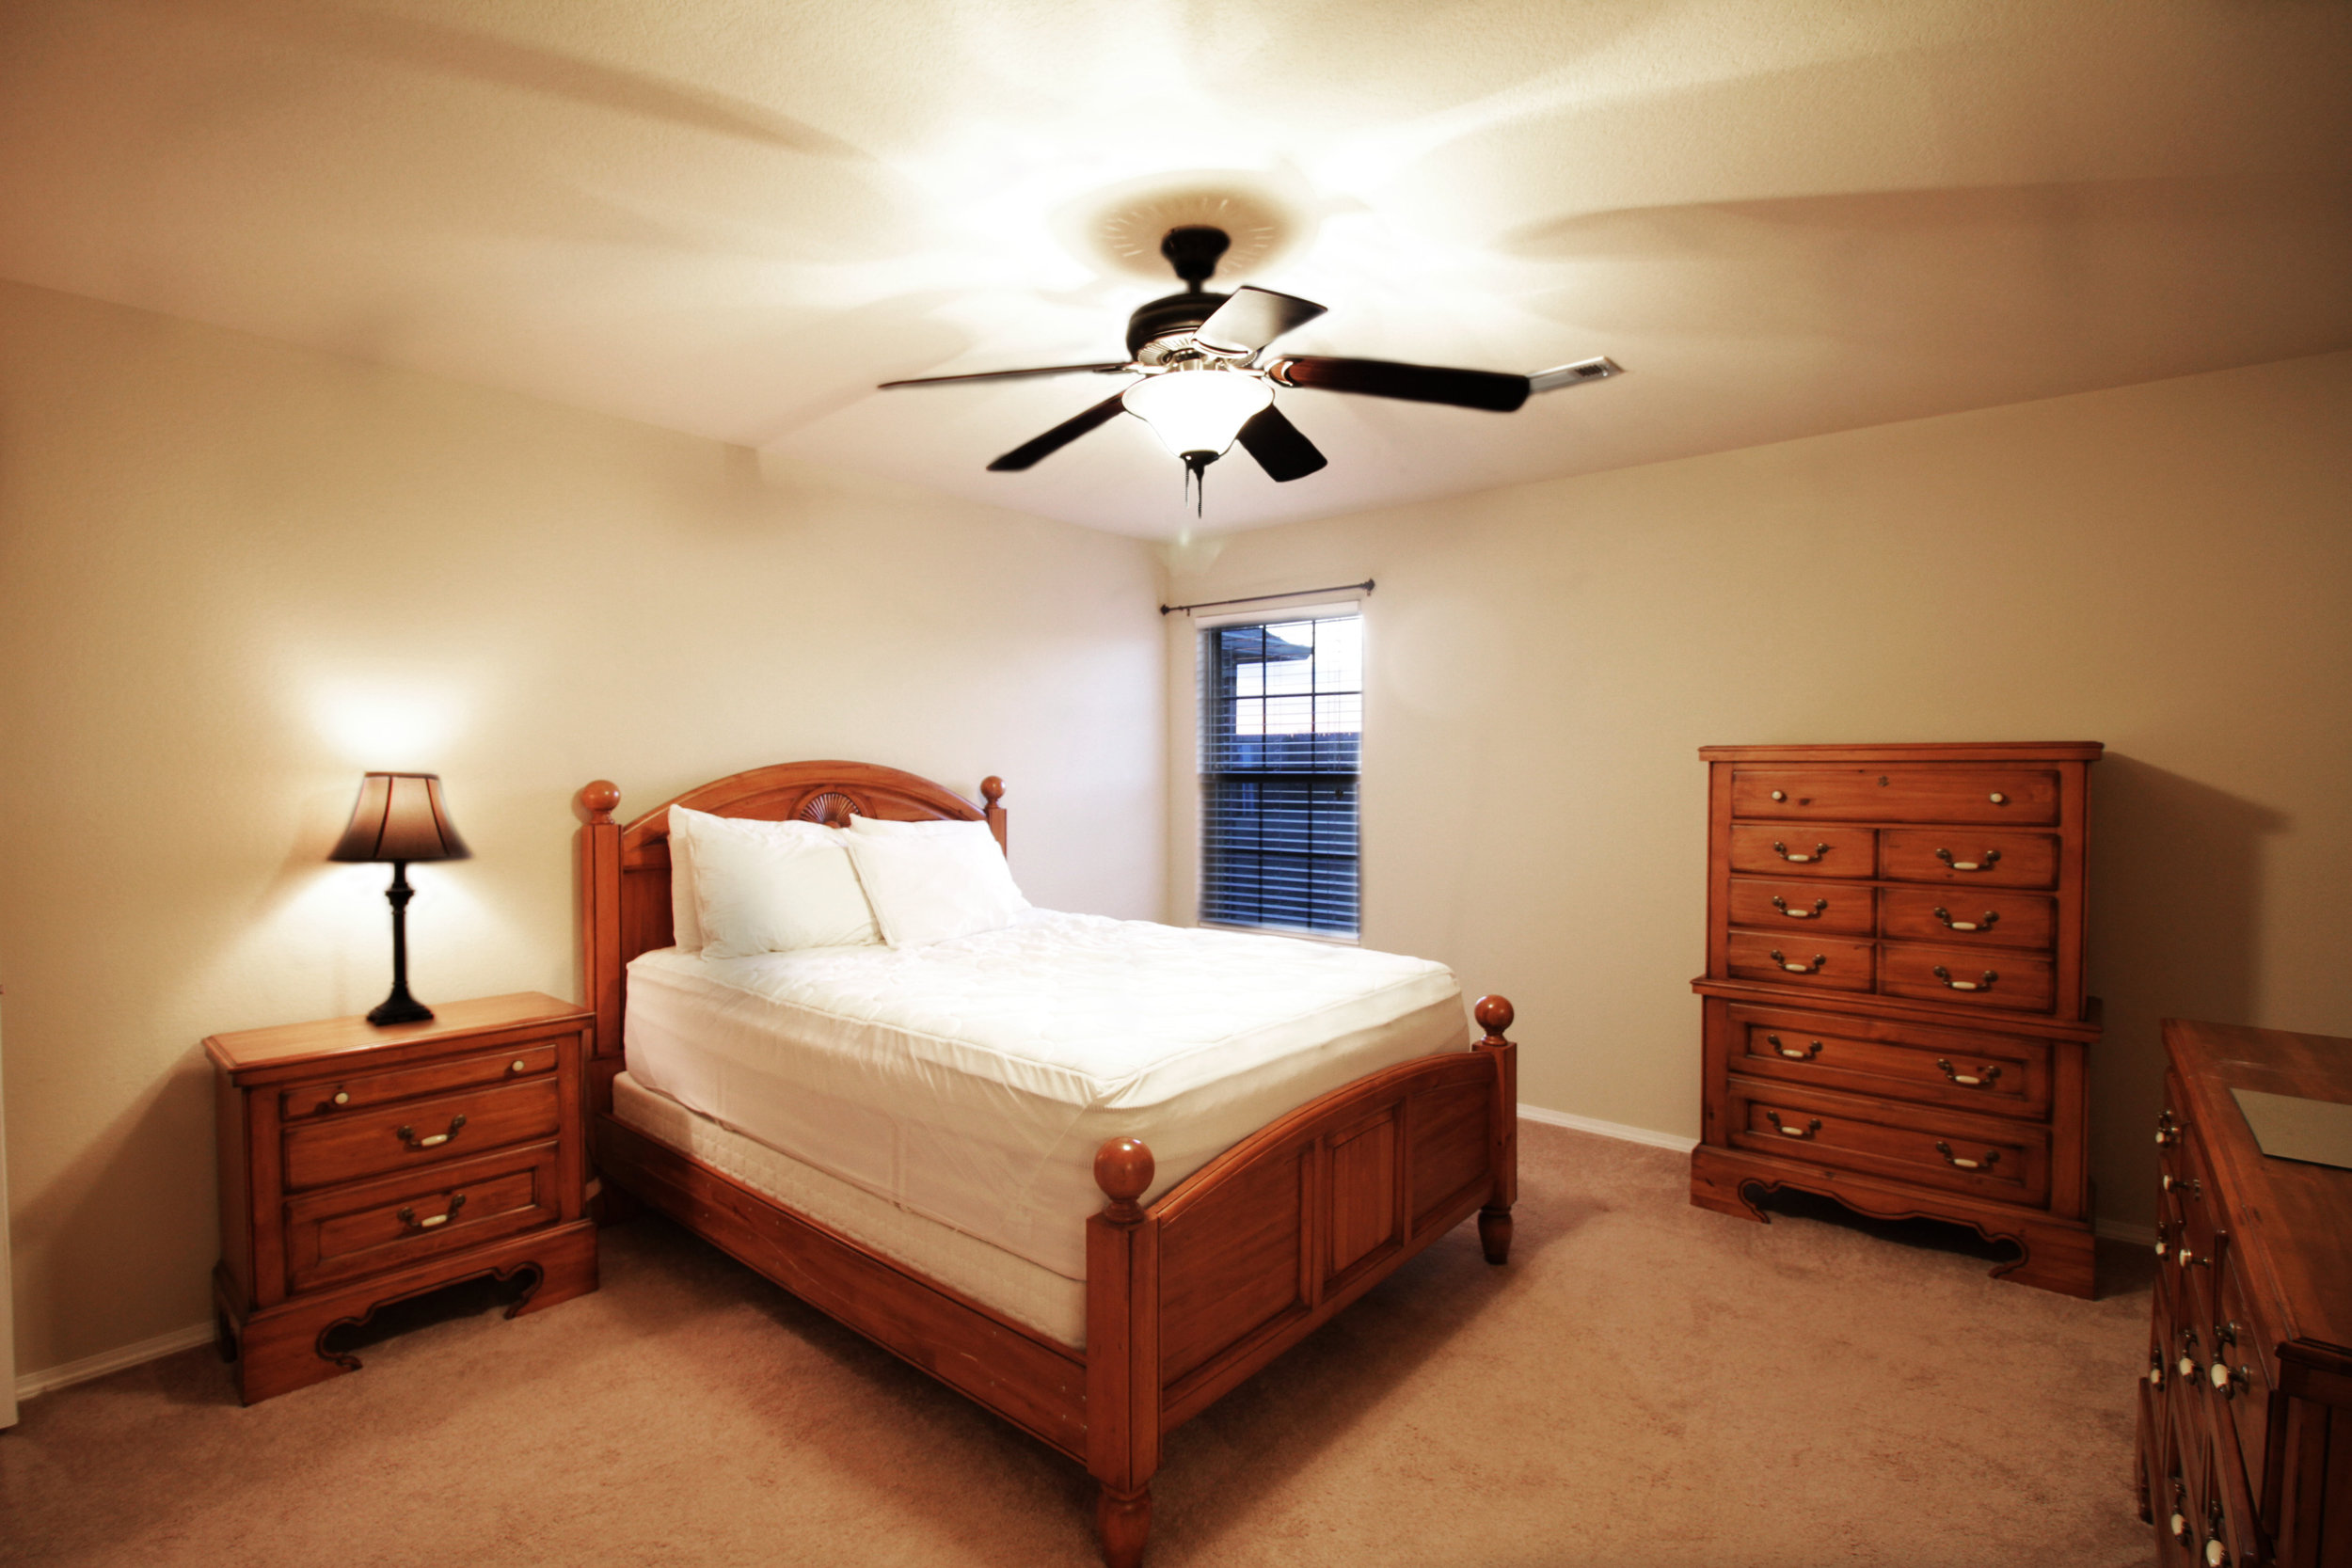 3050 Hook master bedroom.jpg